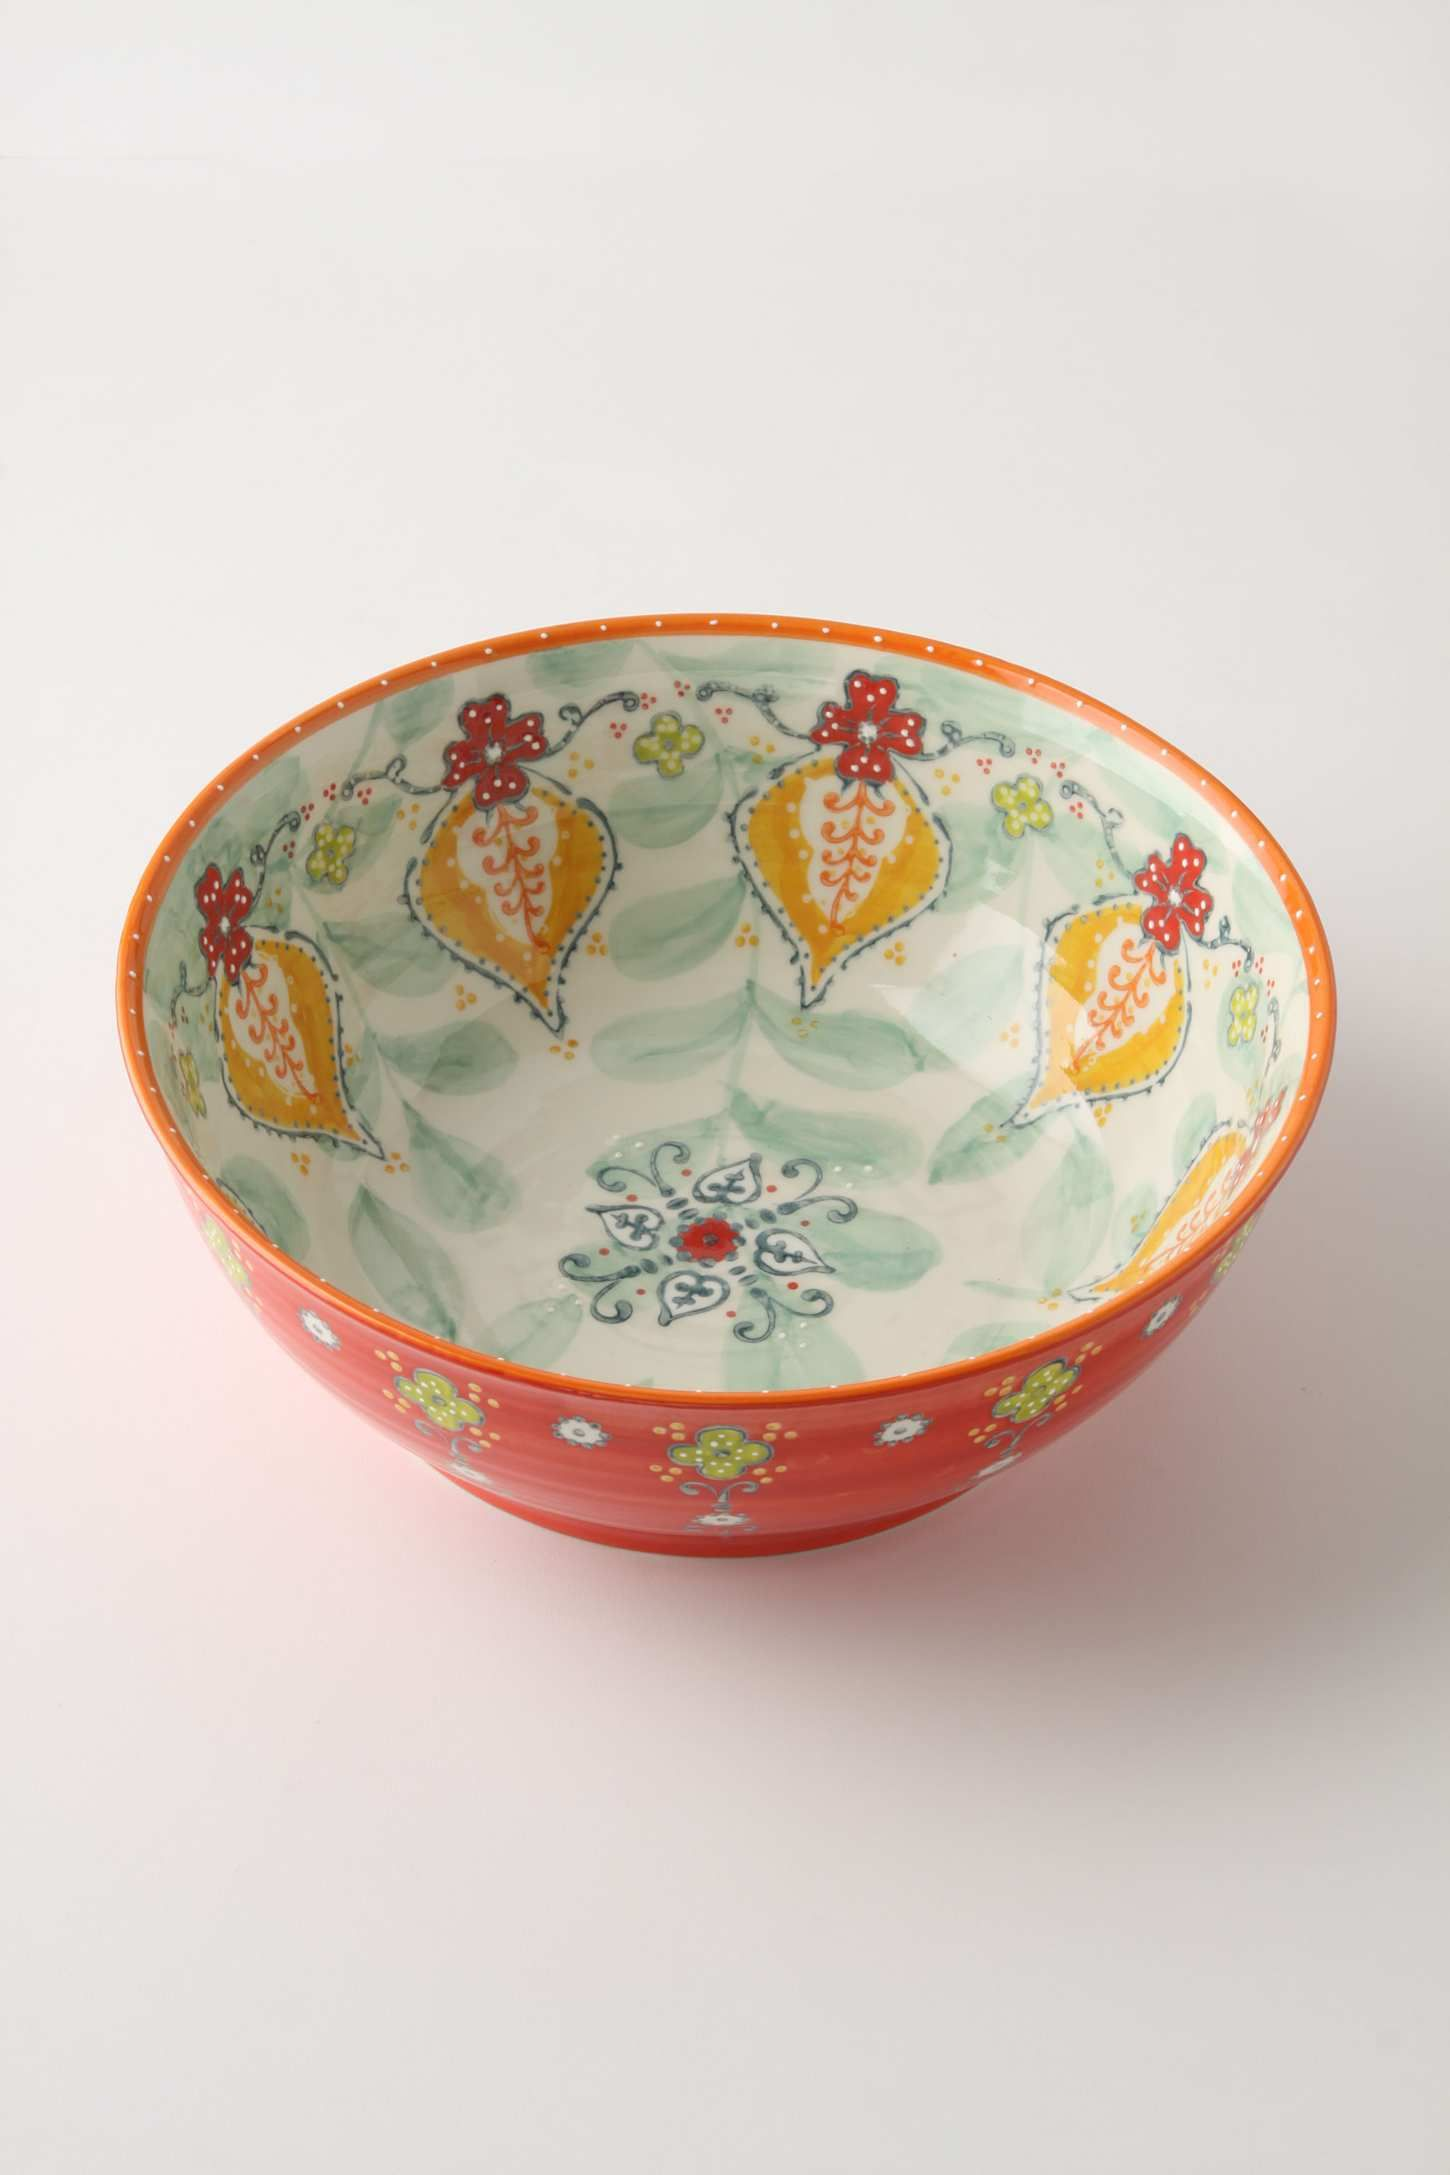 I can never have too many patterned bowls!